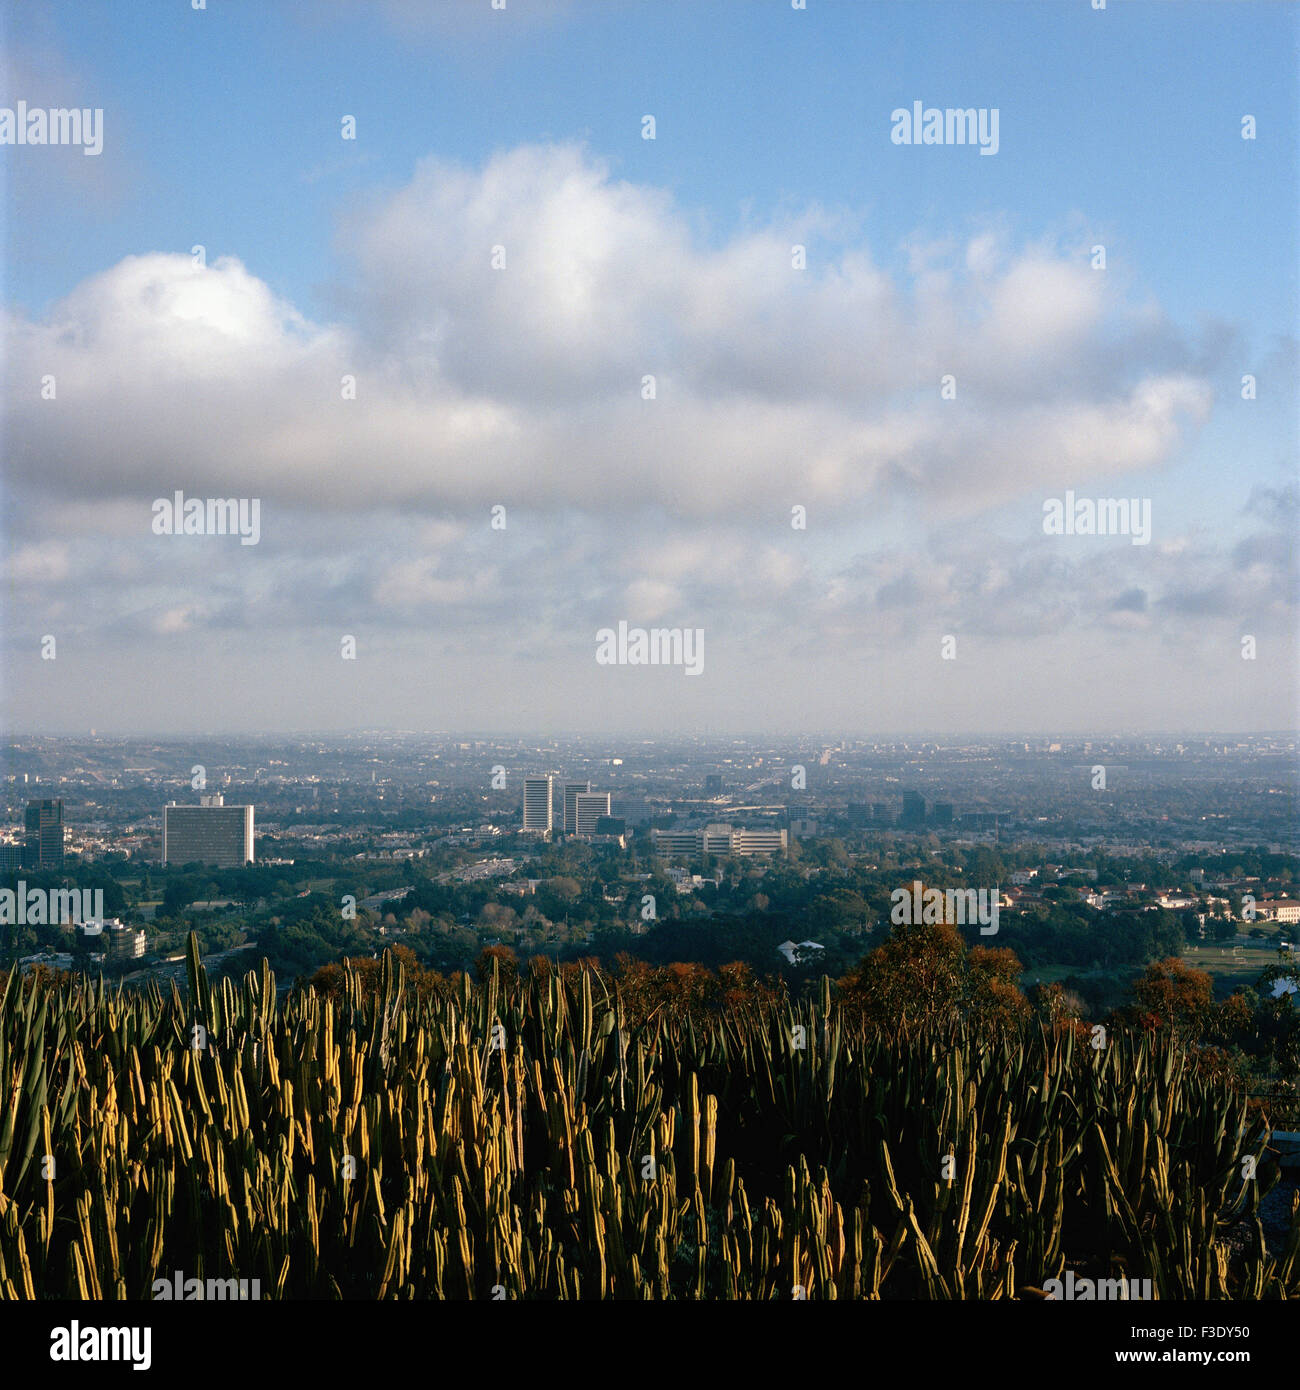 Cactus covered mountaintop overlooking city - Stock Image